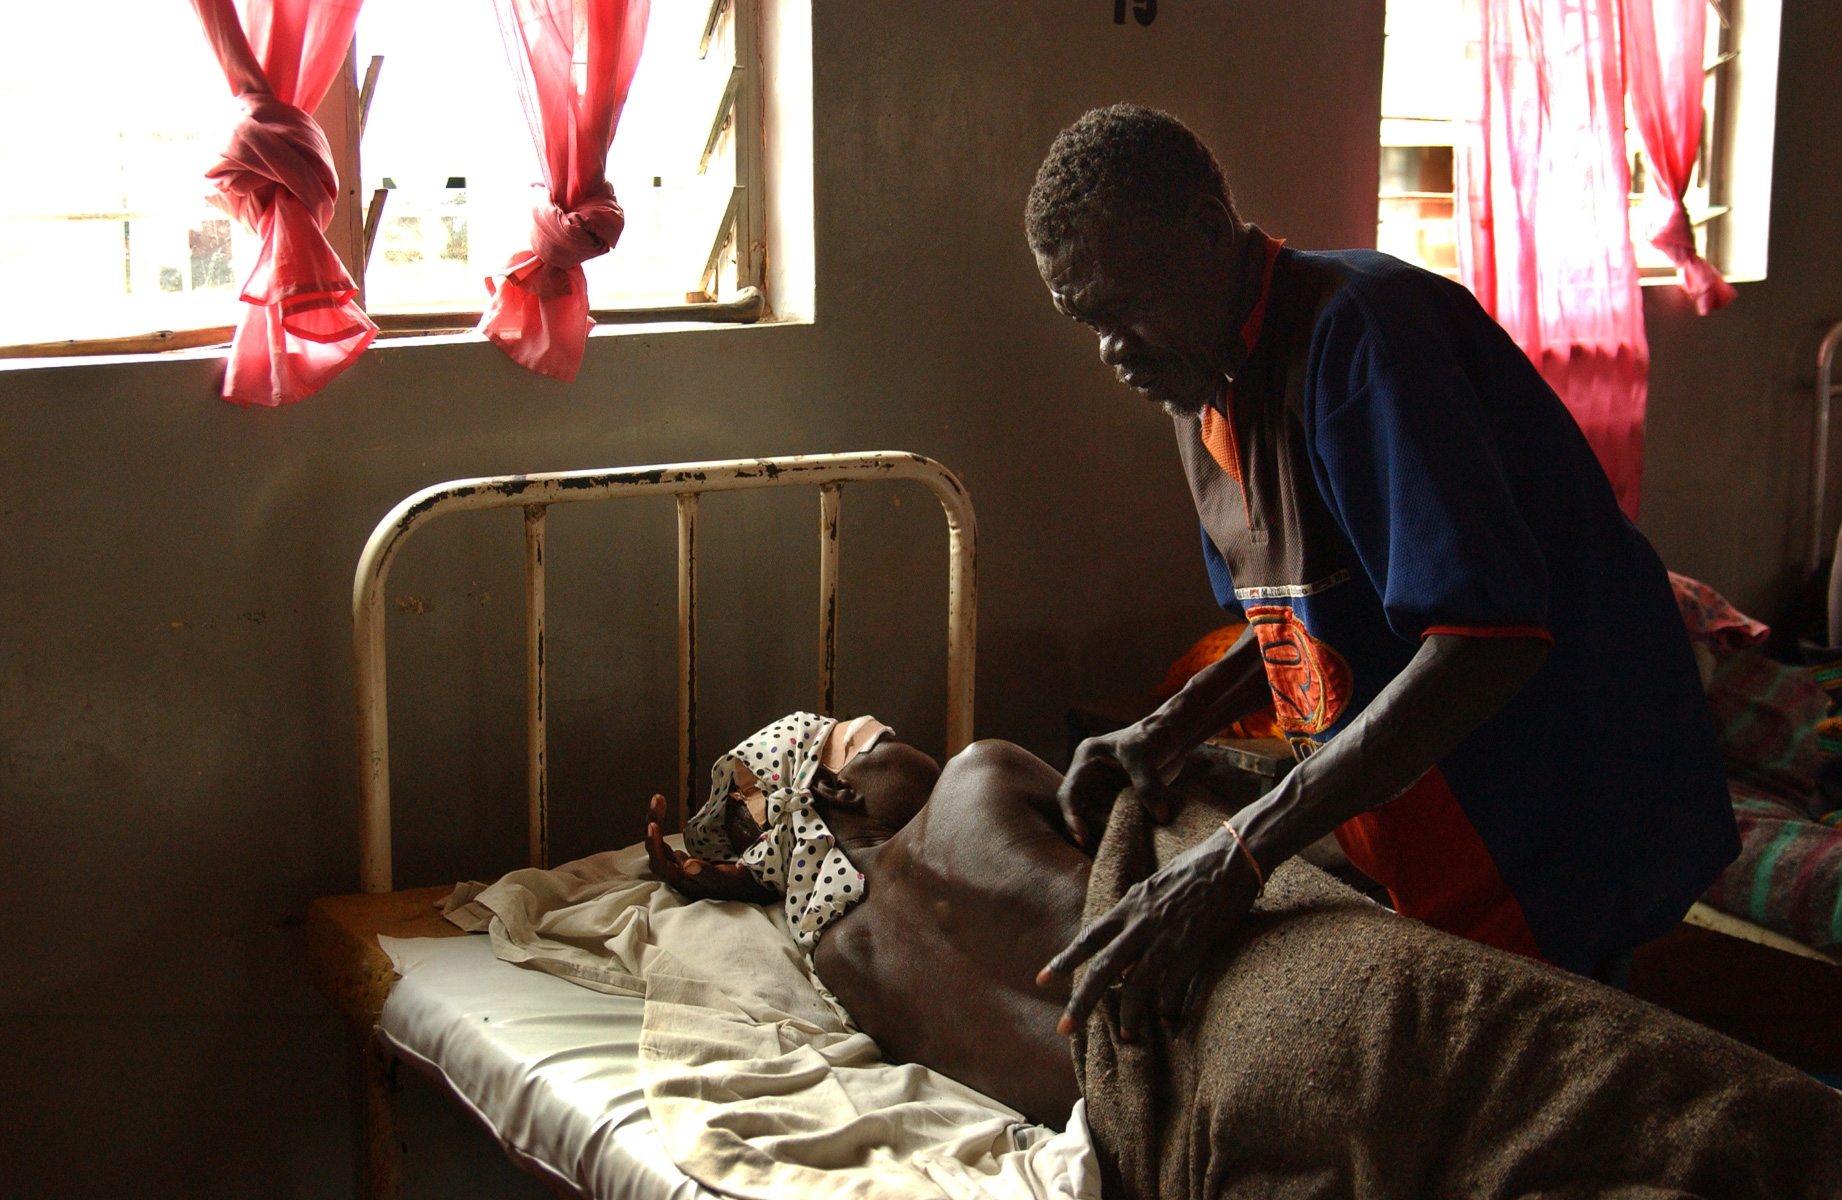 Duculina Abalo is cared for by her husband Lino Ochia at Kitgum hospital. She was on her way to collect mangos with another man when Lord's Resistance Army rebels attacked them leaving her with serious head injuries. The man has not been seen since the attack. Uganda.